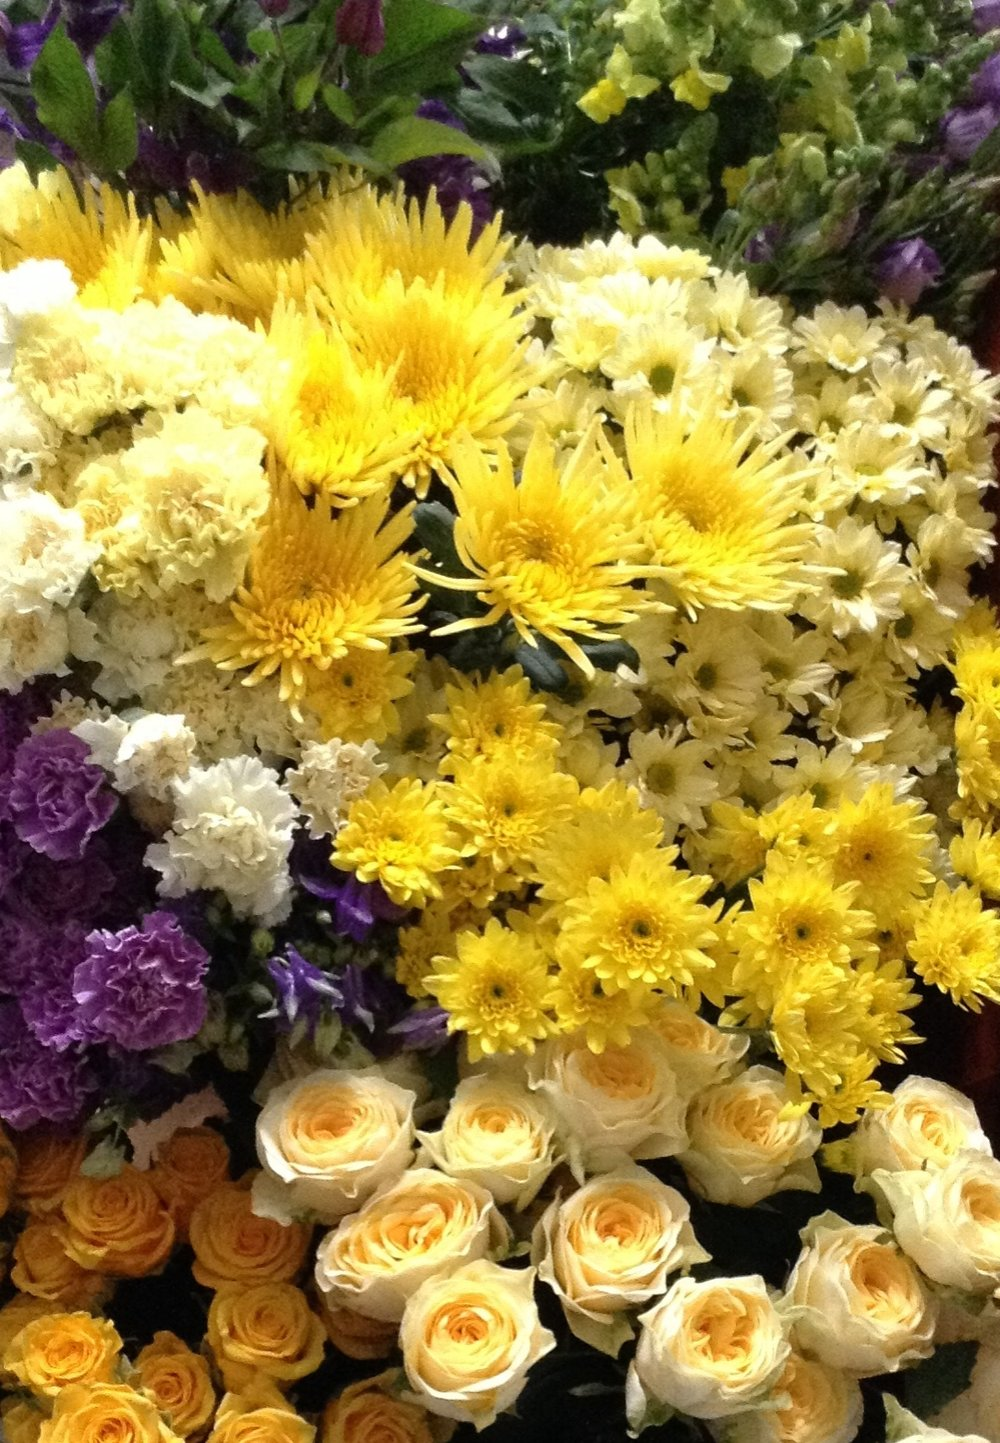 Learn to choose the best flowers.